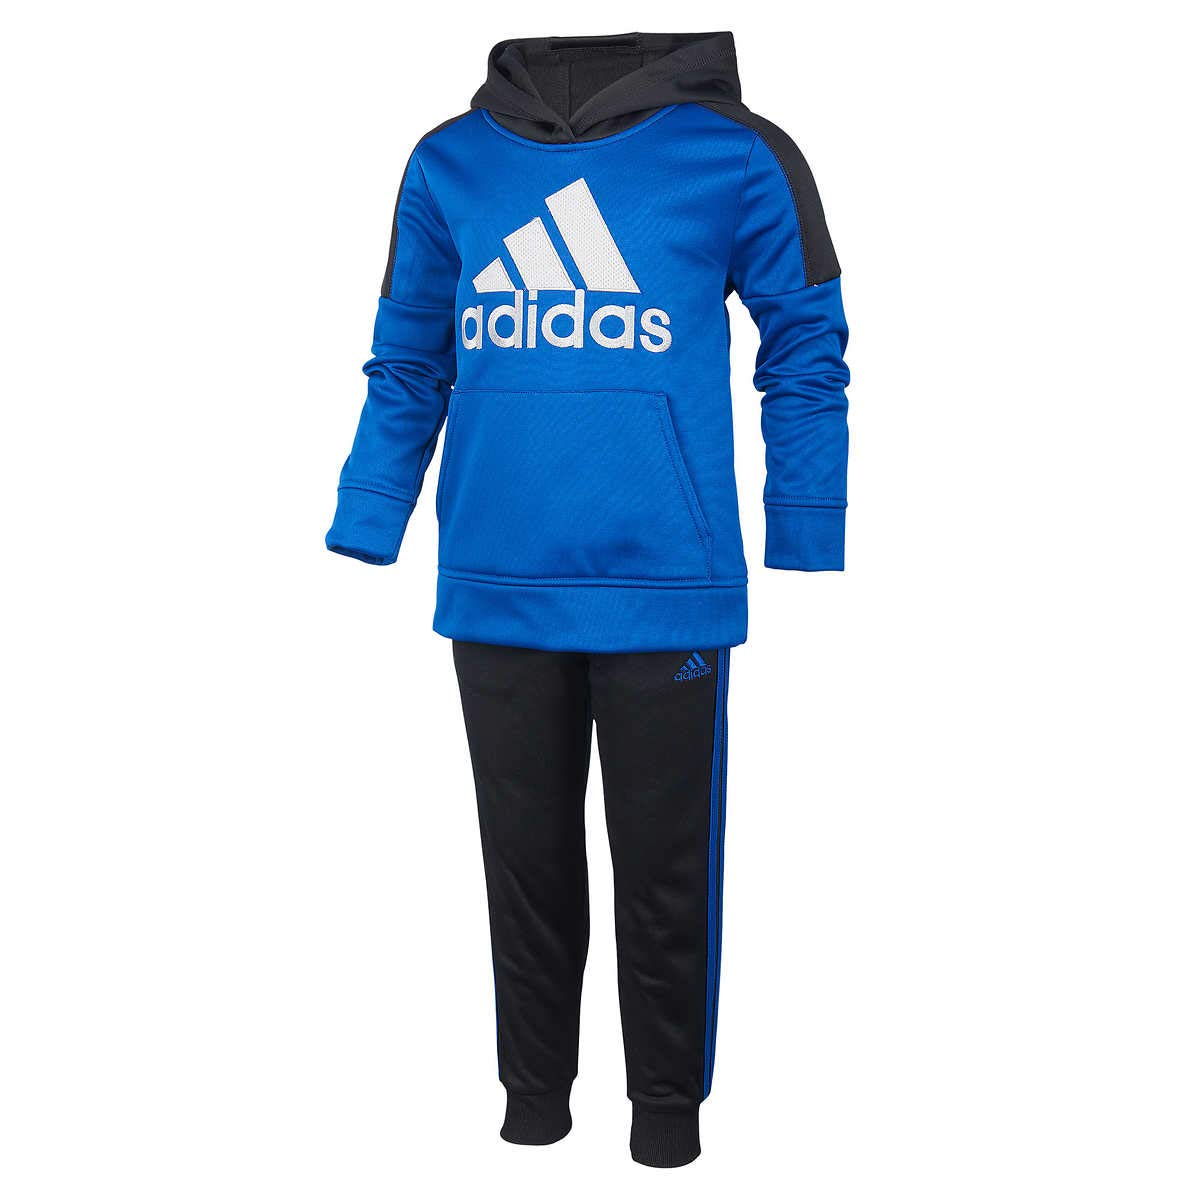 Adidas Boys 2 Piece Fleece Lined Active Set